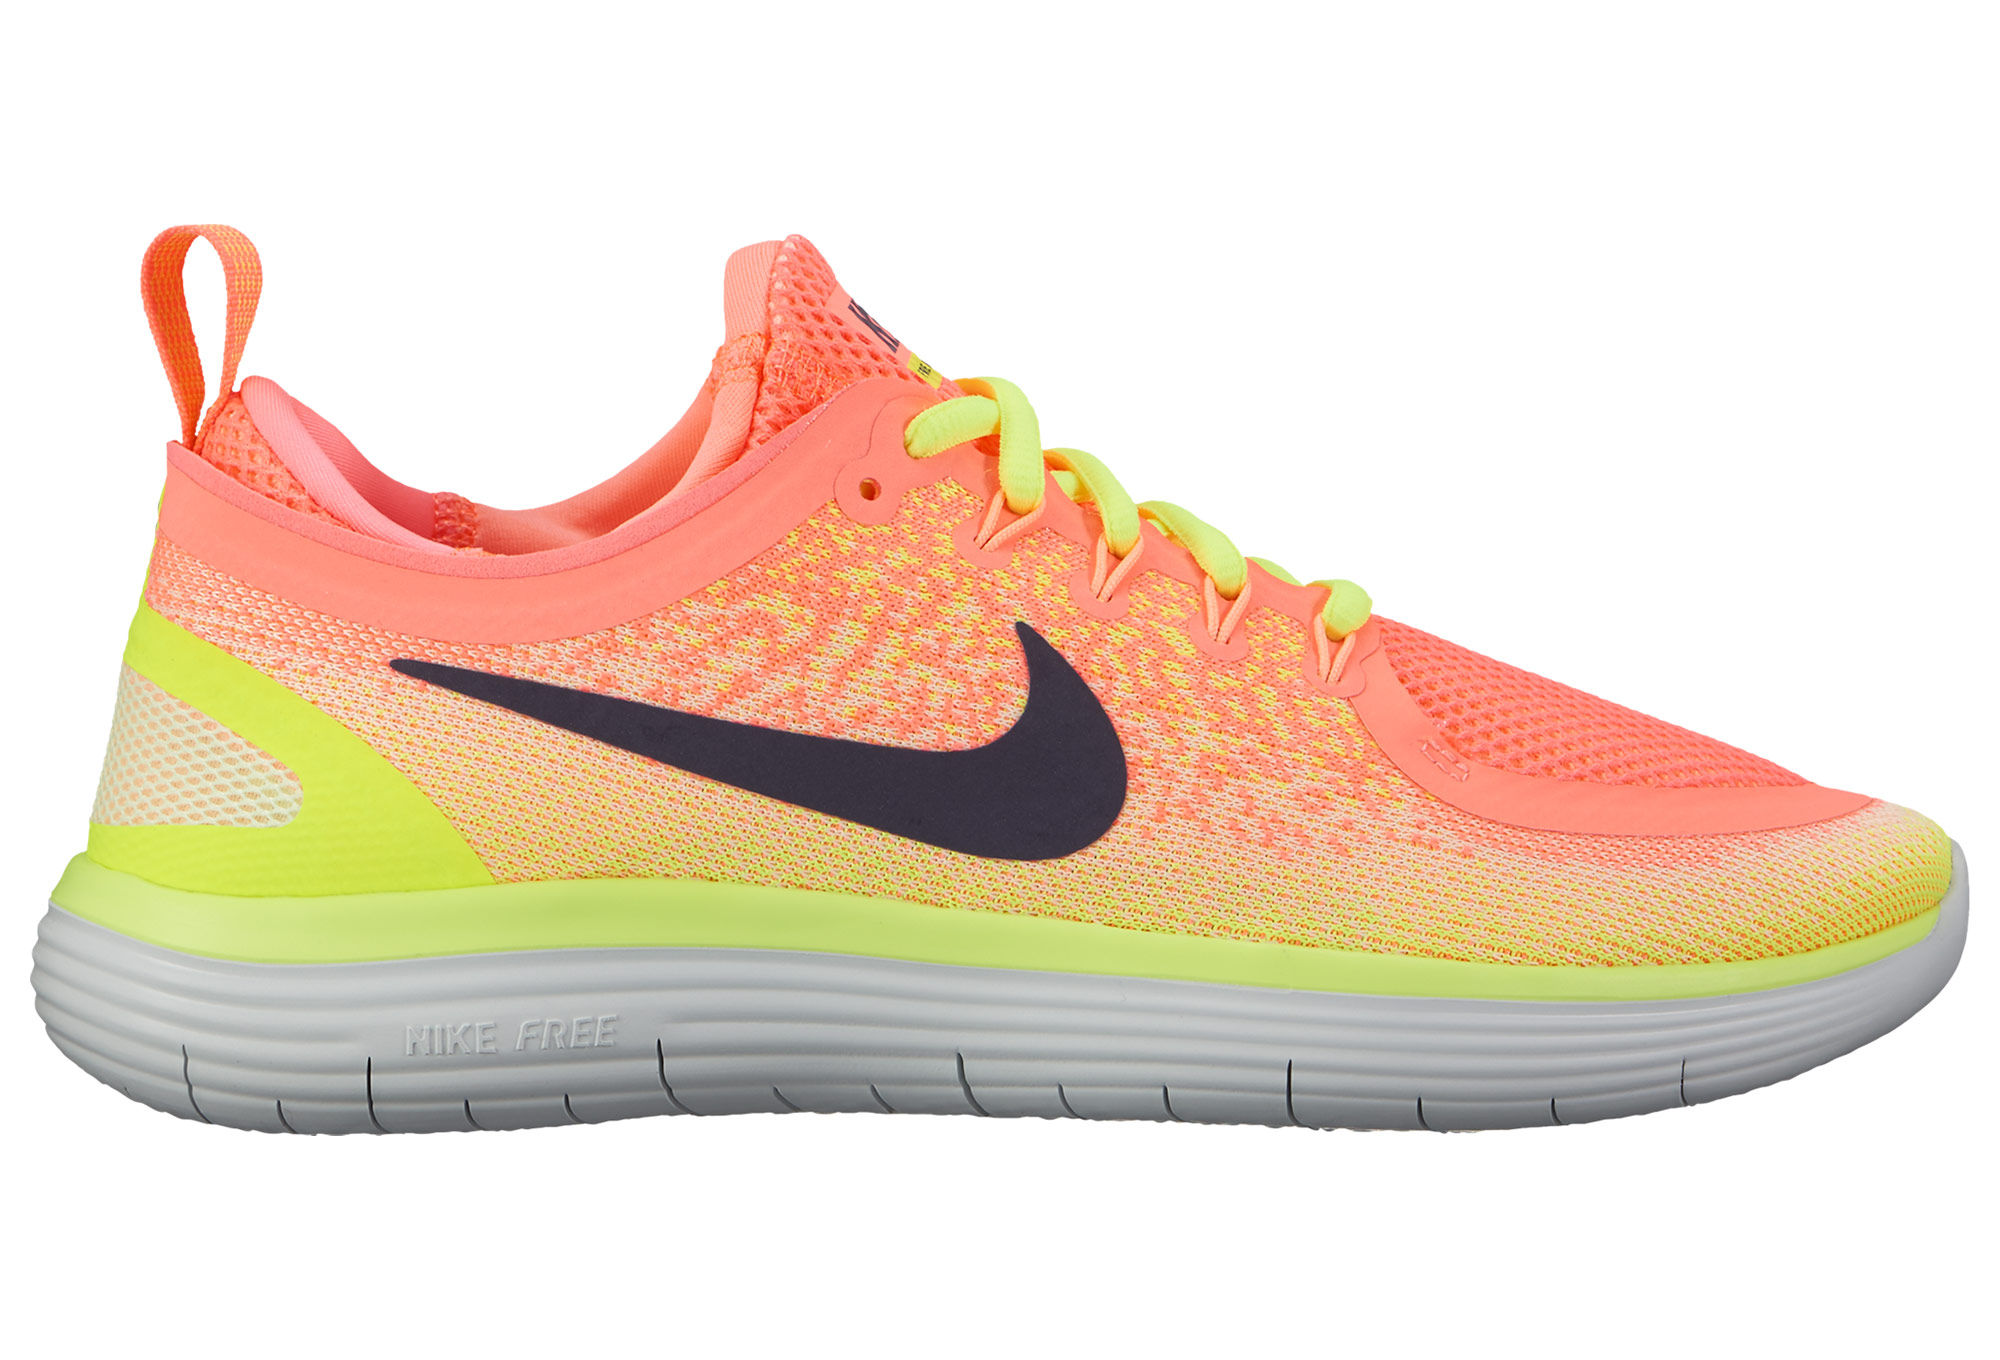 1f9b36593a46 NIKE FREE RUN DISTANCE 2 Women s Shoes Pink Yellow